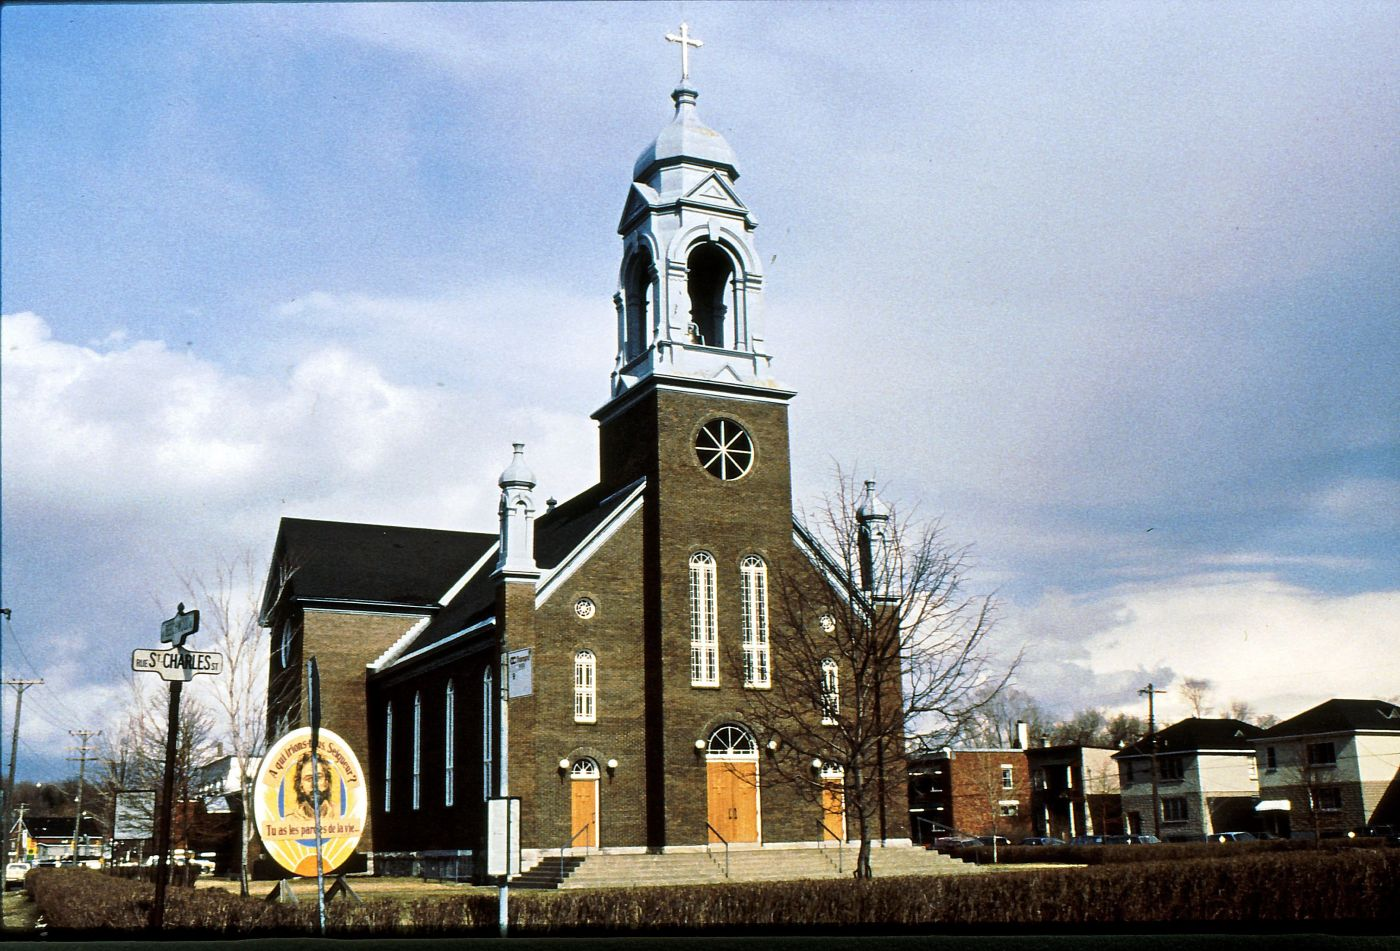 Colour photograph of a dark brown brick church with a striking silver bell tower surmounted by a cross. The facade of the church has three doors, four long windows, and a large bull's-eye window. The church is located near a busy street, in a residential area.